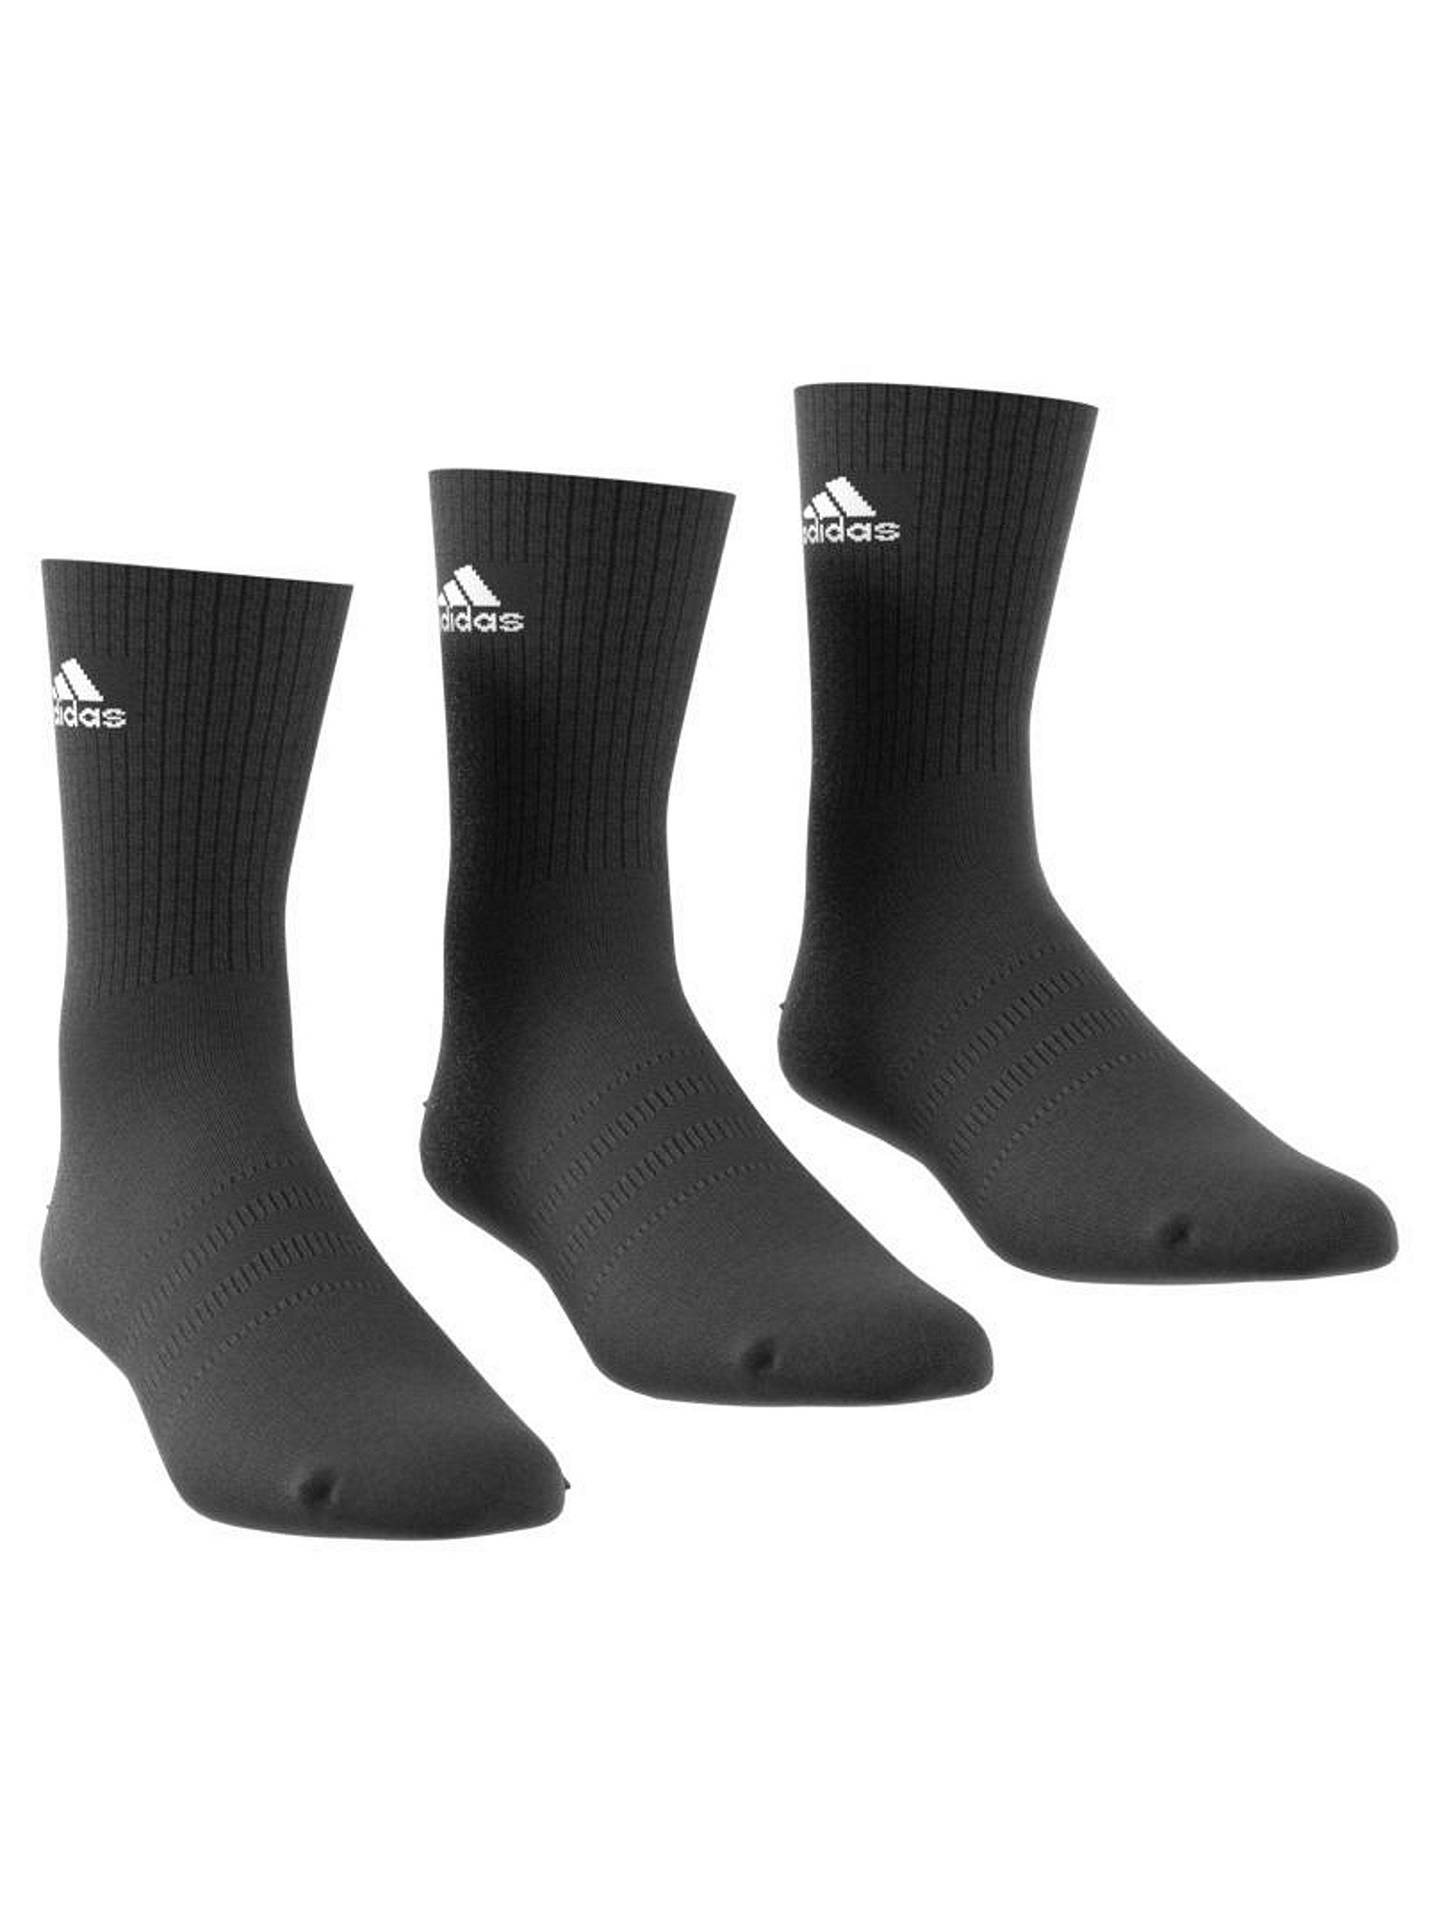 Buyadidas Performance Thin Crew Socks, Pack of 3, Black, 5.5-8 Online at johnlewis.com